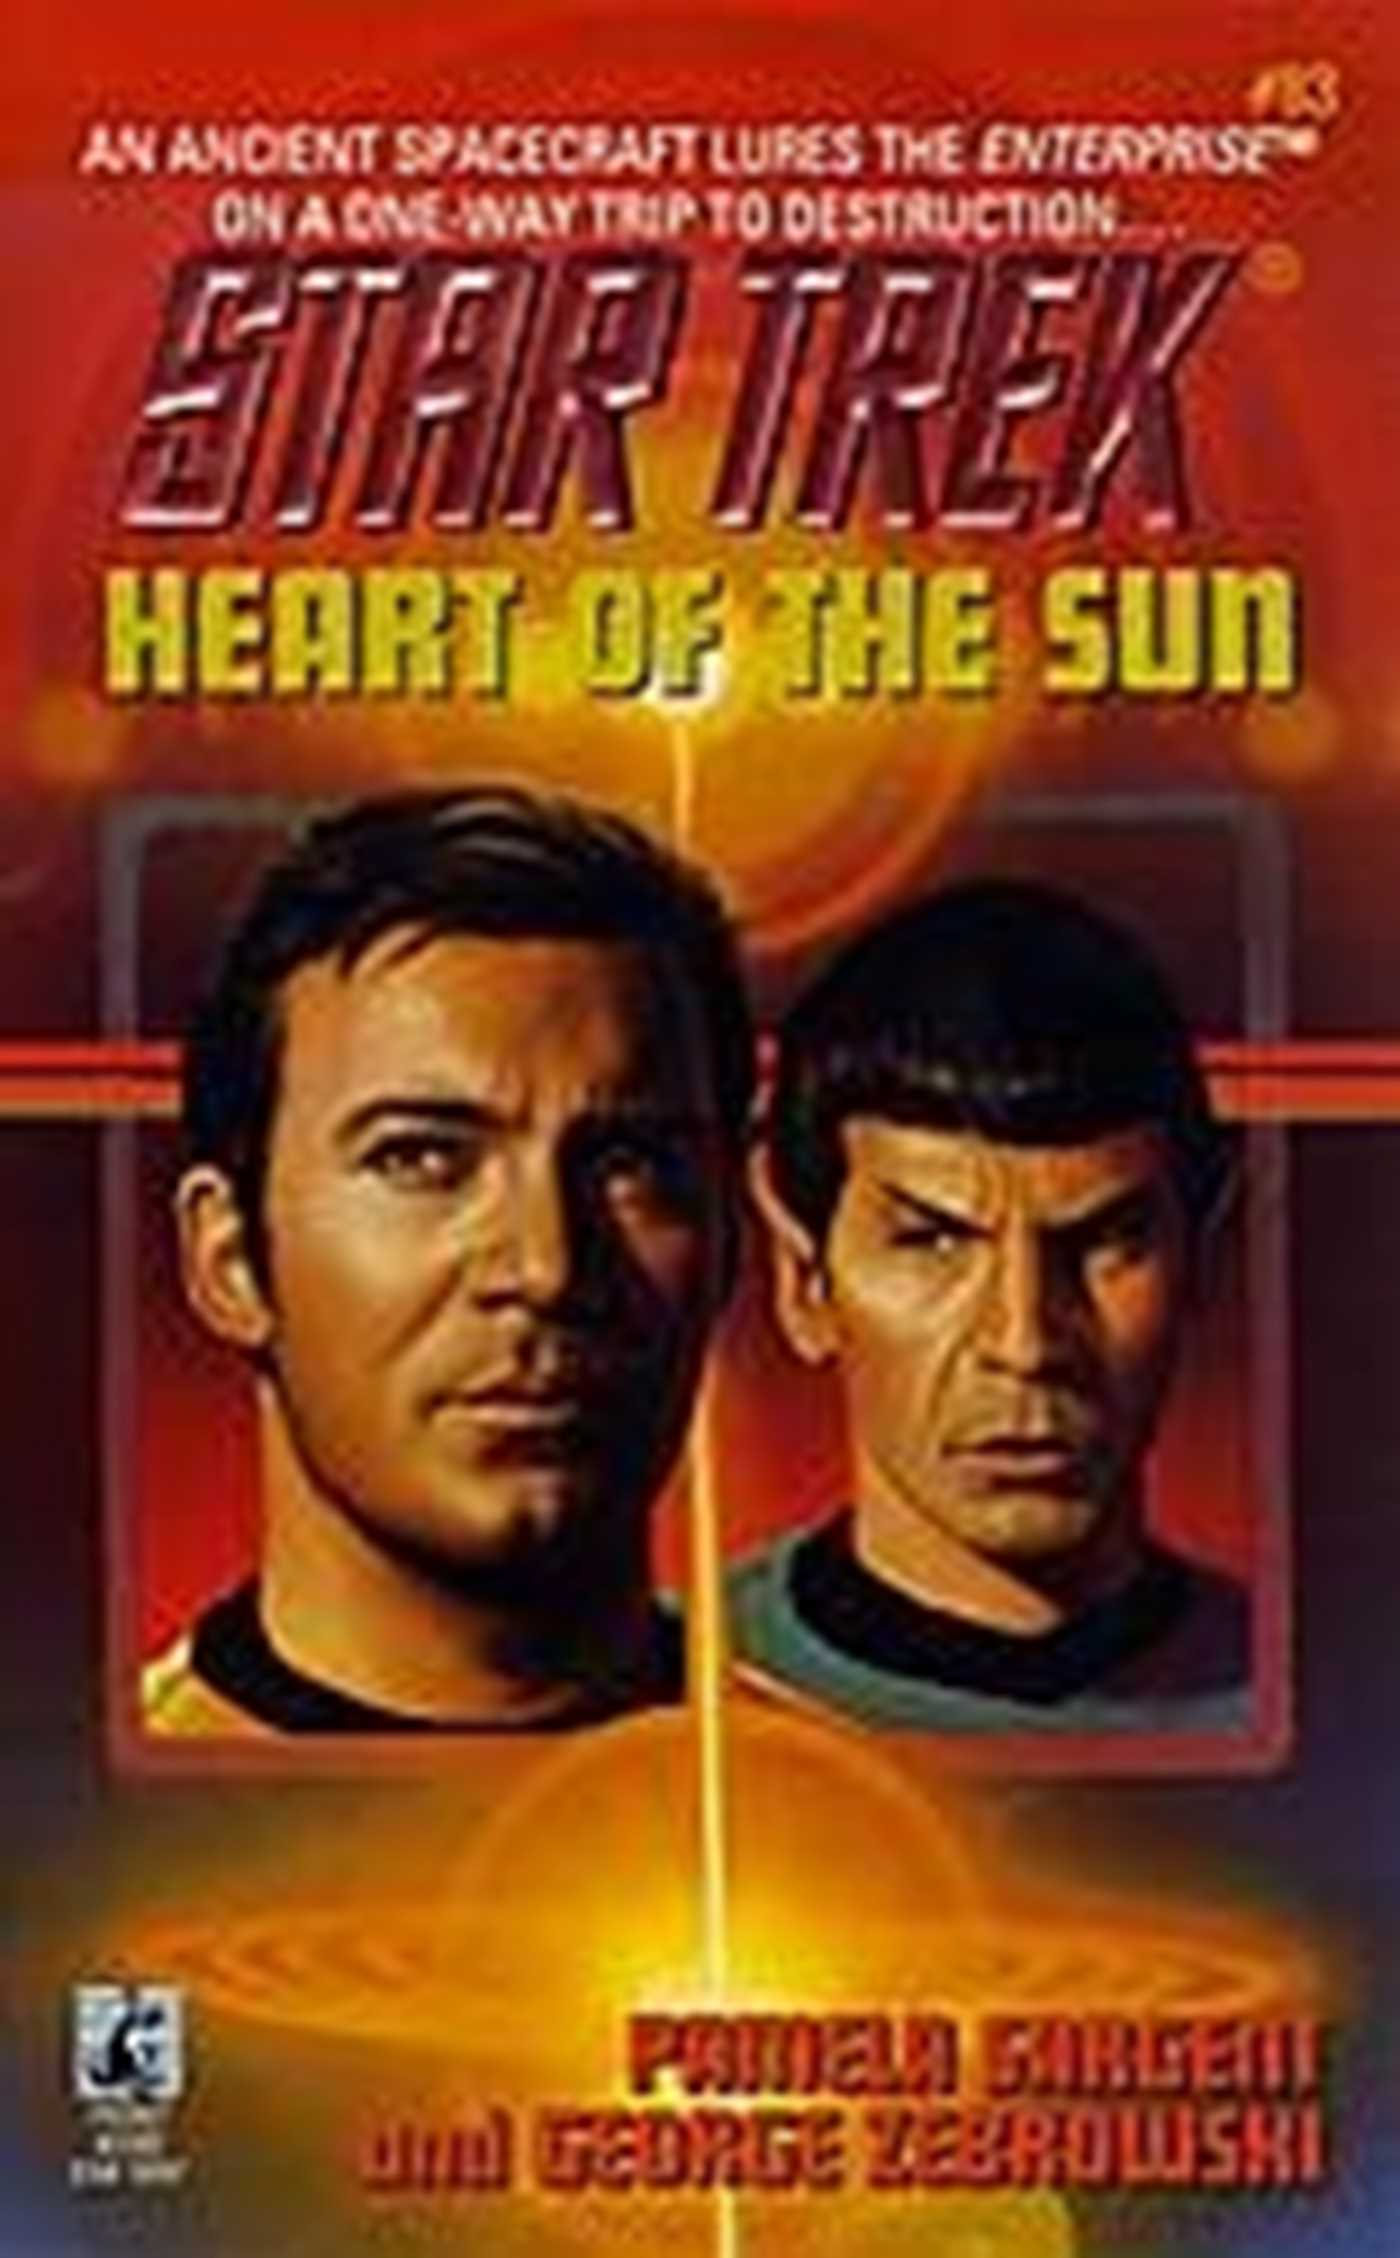 Heart of the sun star trek 83 9780743454001 hr